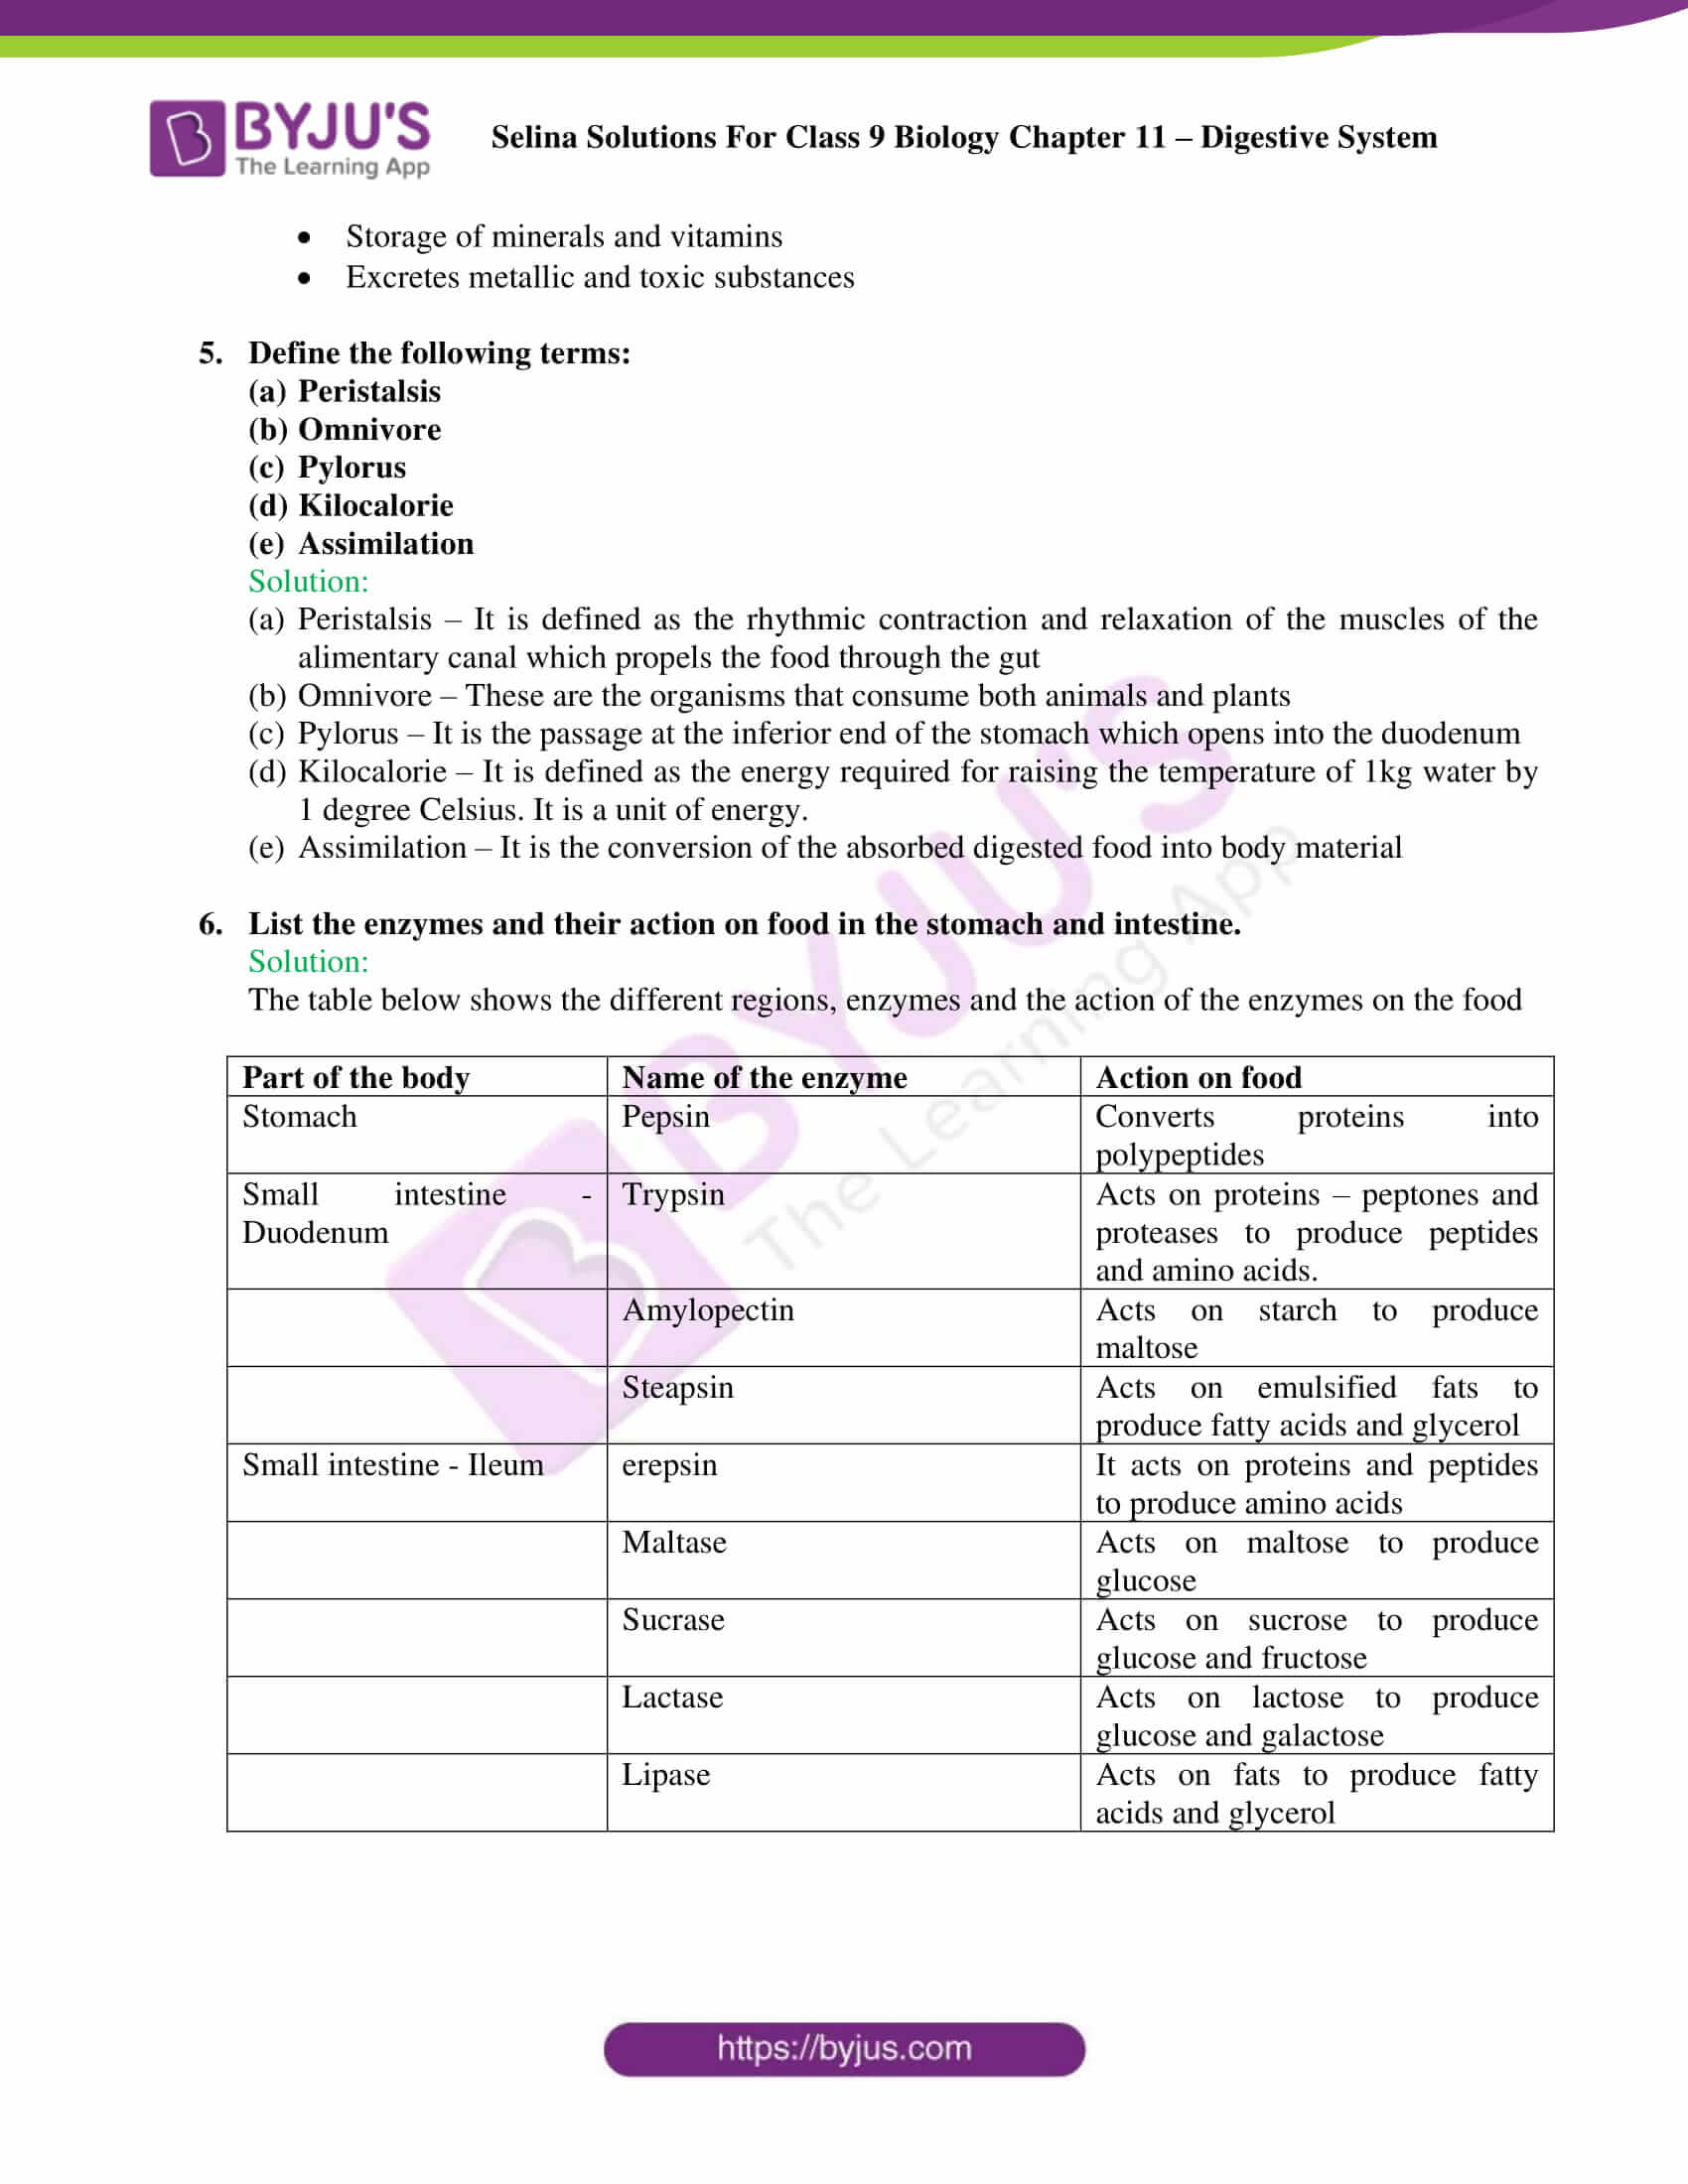 selina Solutions For Class 9 Biology Chapter 11 part 10